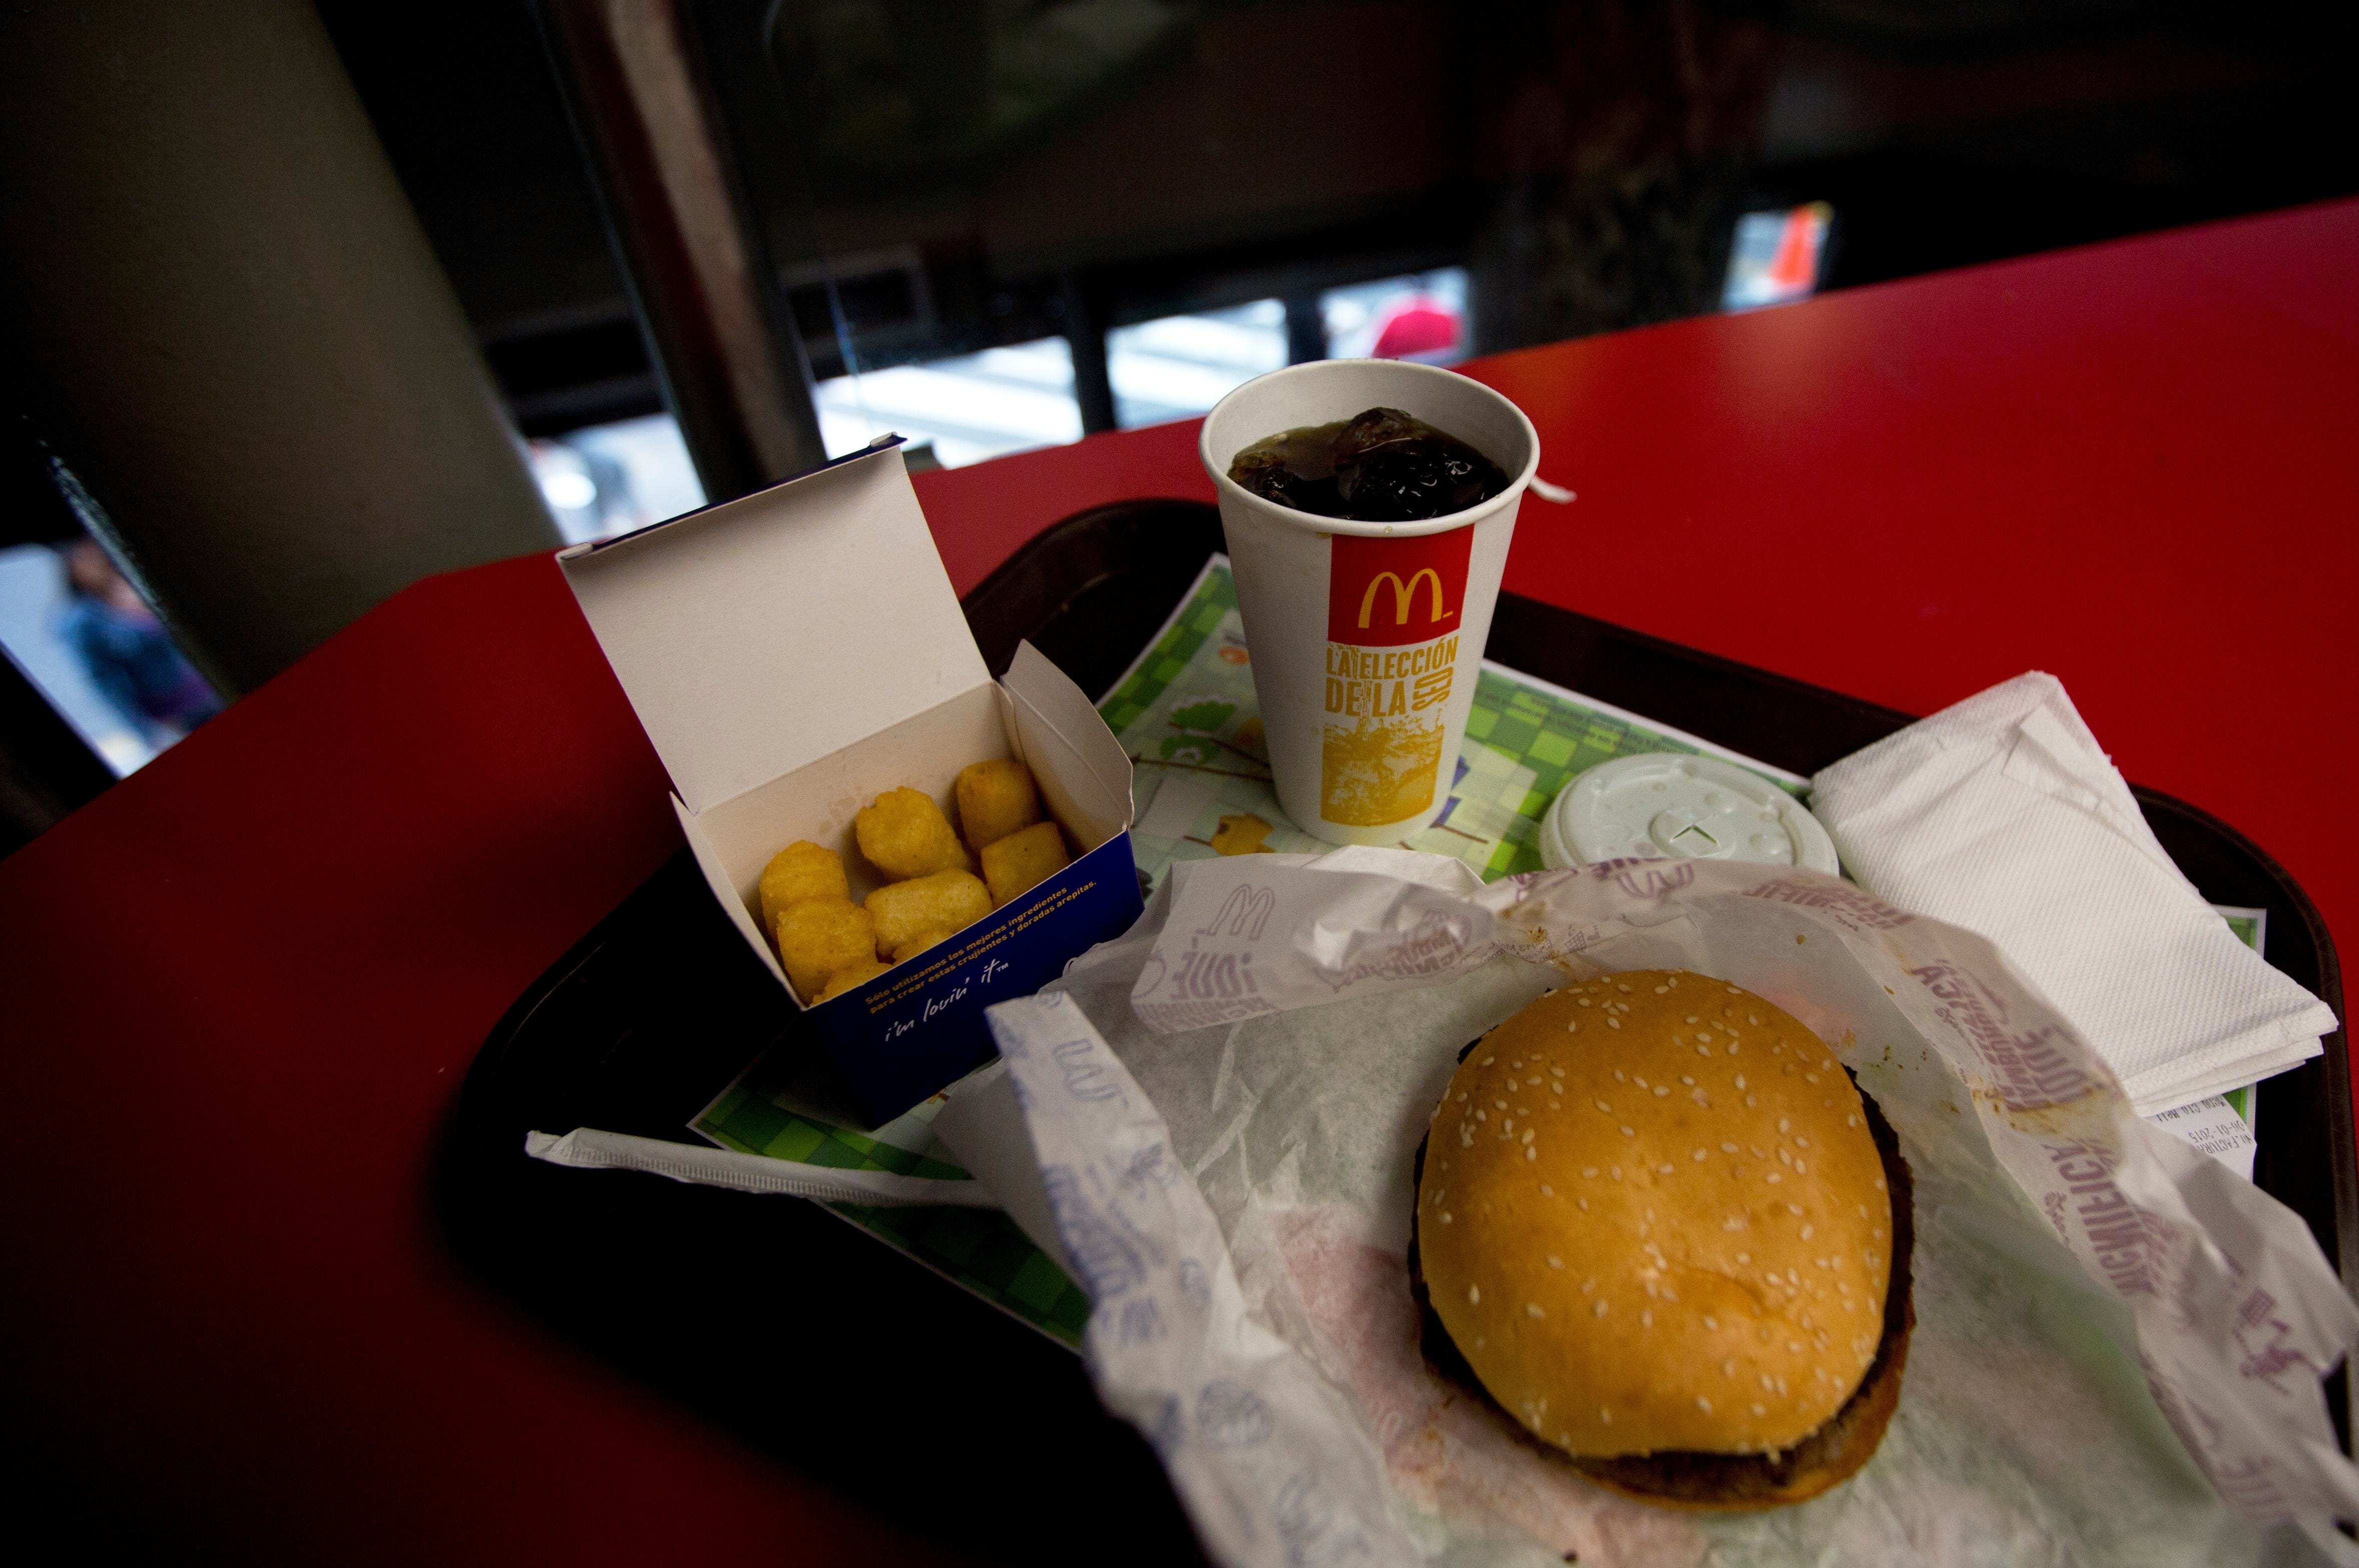 French fry shortage at McDonald's in Venezuela